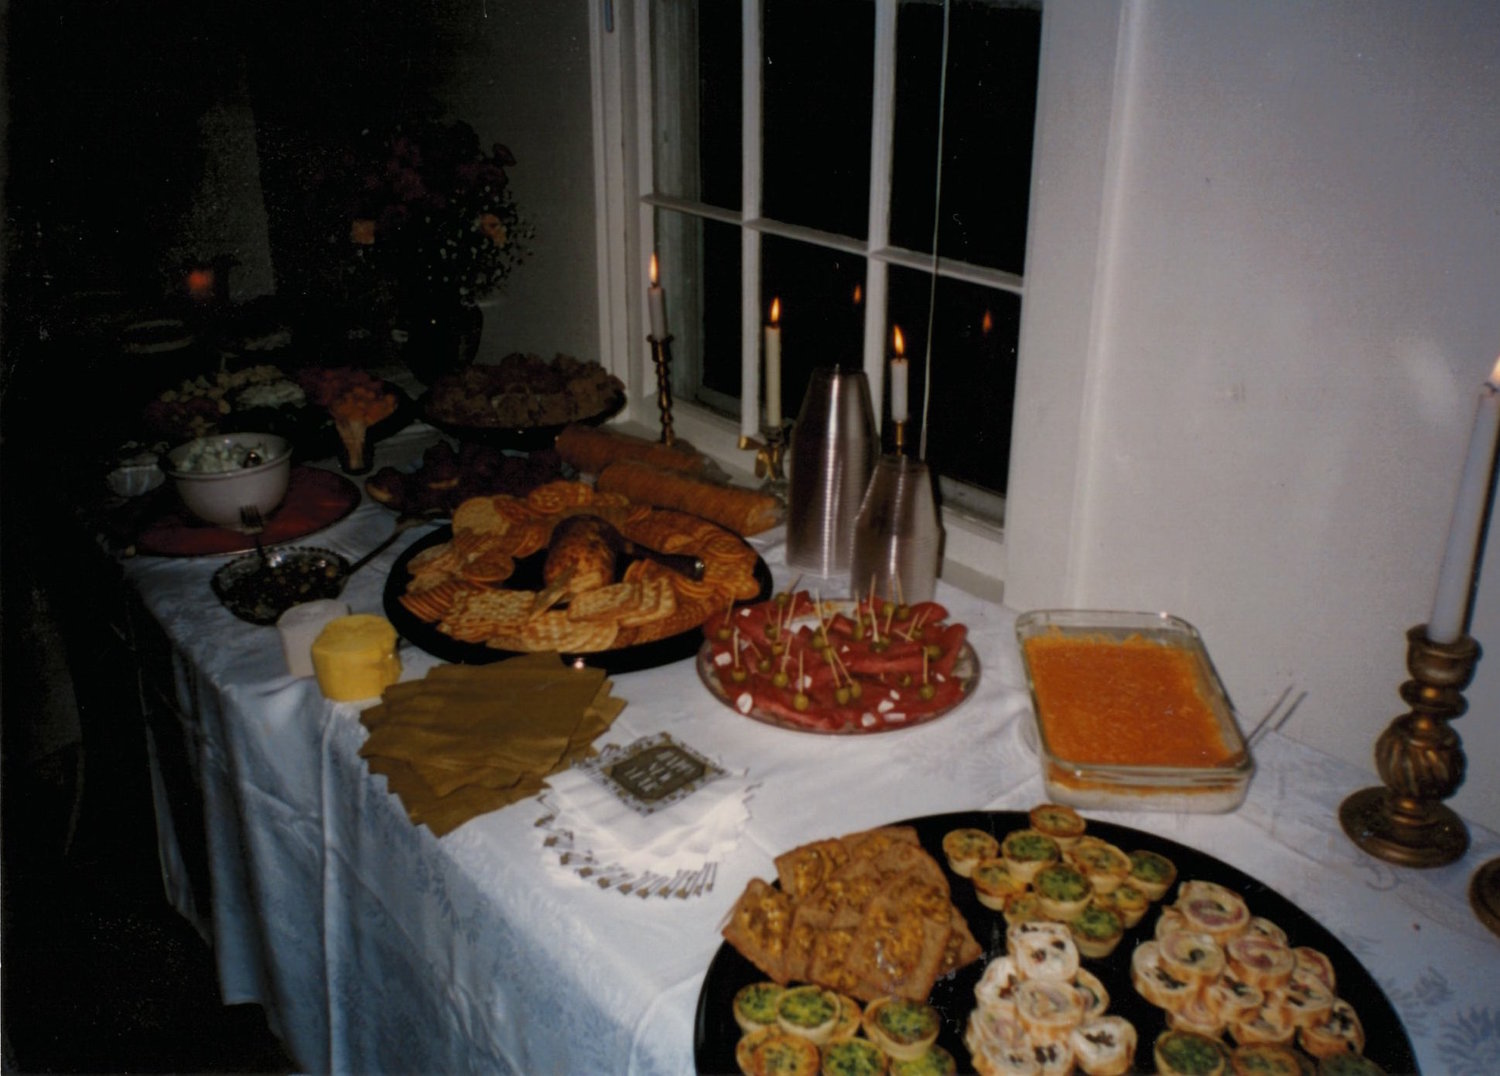 The  very first  event we catered ... the infamous New Year's Eve party 1996